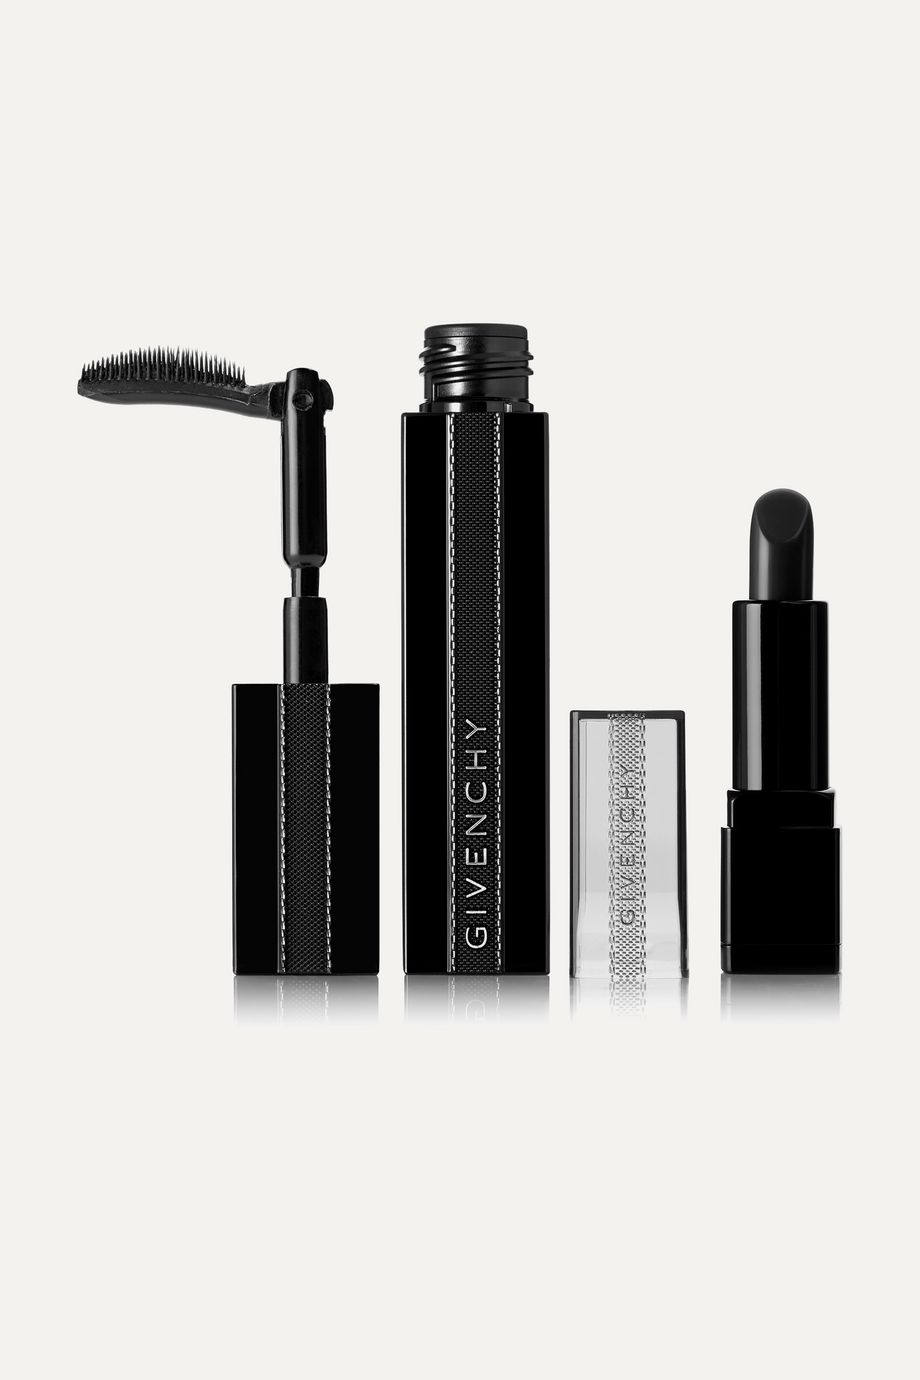 Givenchy Beauty Noir Interdit Mascara and Rouge Interdit Vinyl Lipstick Set